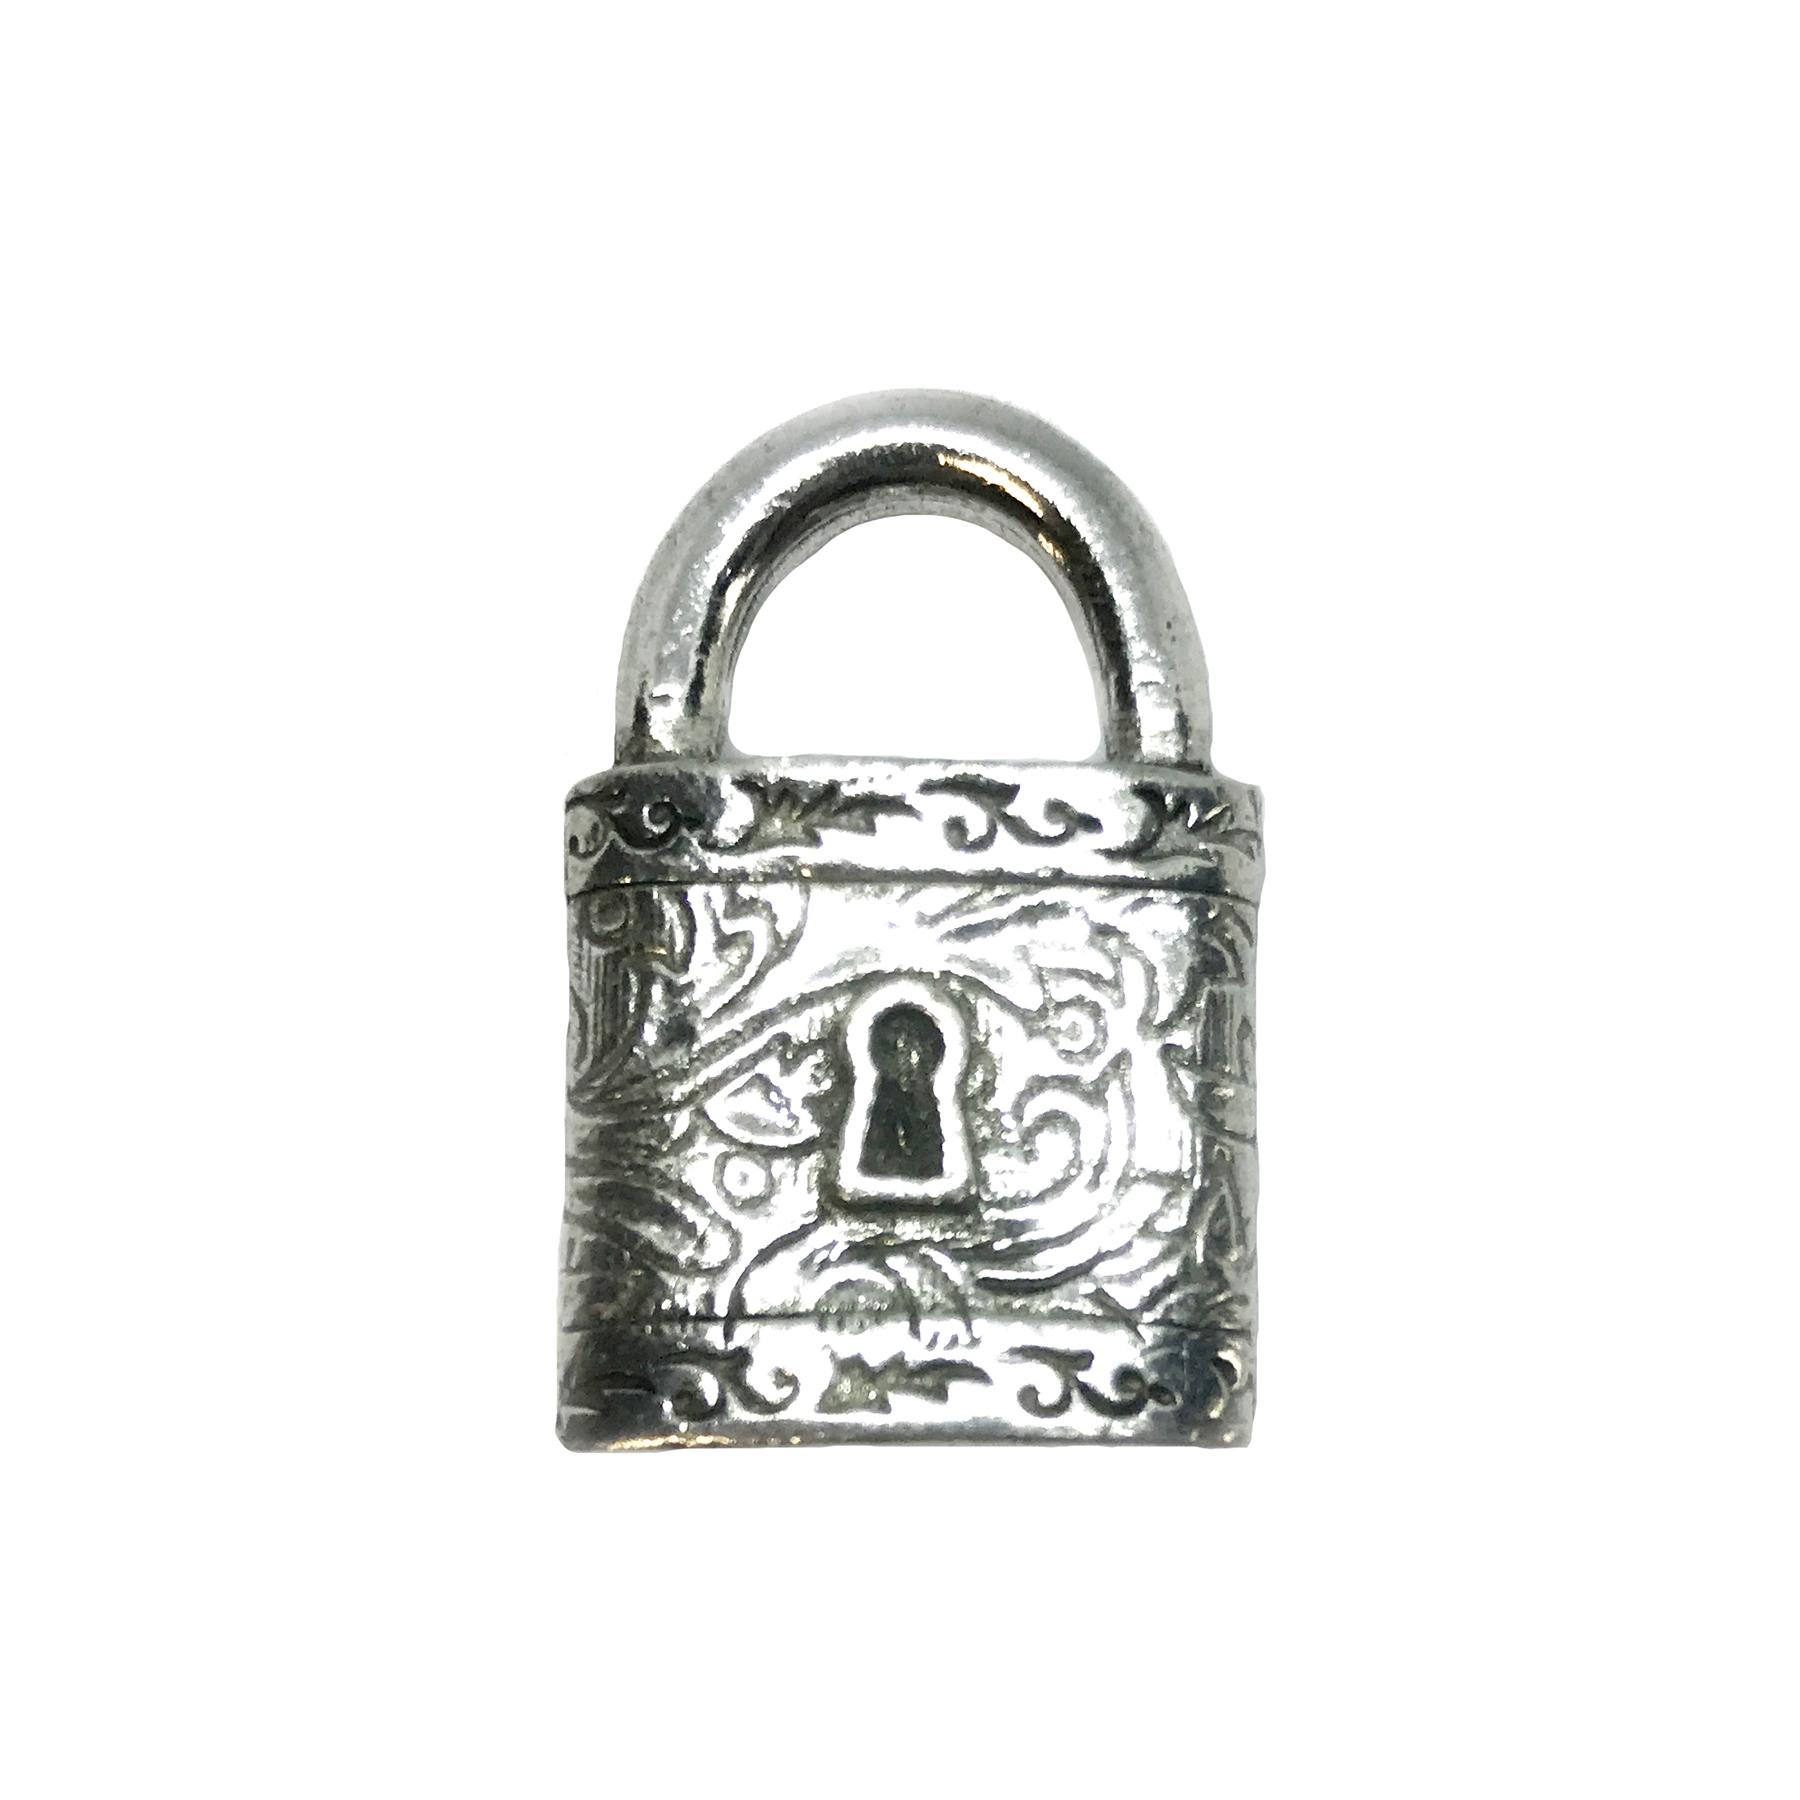 Victorian square style lock, pendant, victorian square lock stamping, lock, old silver pewter, old silver, 3d charm, vintage style, antique silver, us made, nickel free, B'sue Boutiques, B'sue by 1928,lead free pewter,vintage supplies,jewelry making,04889